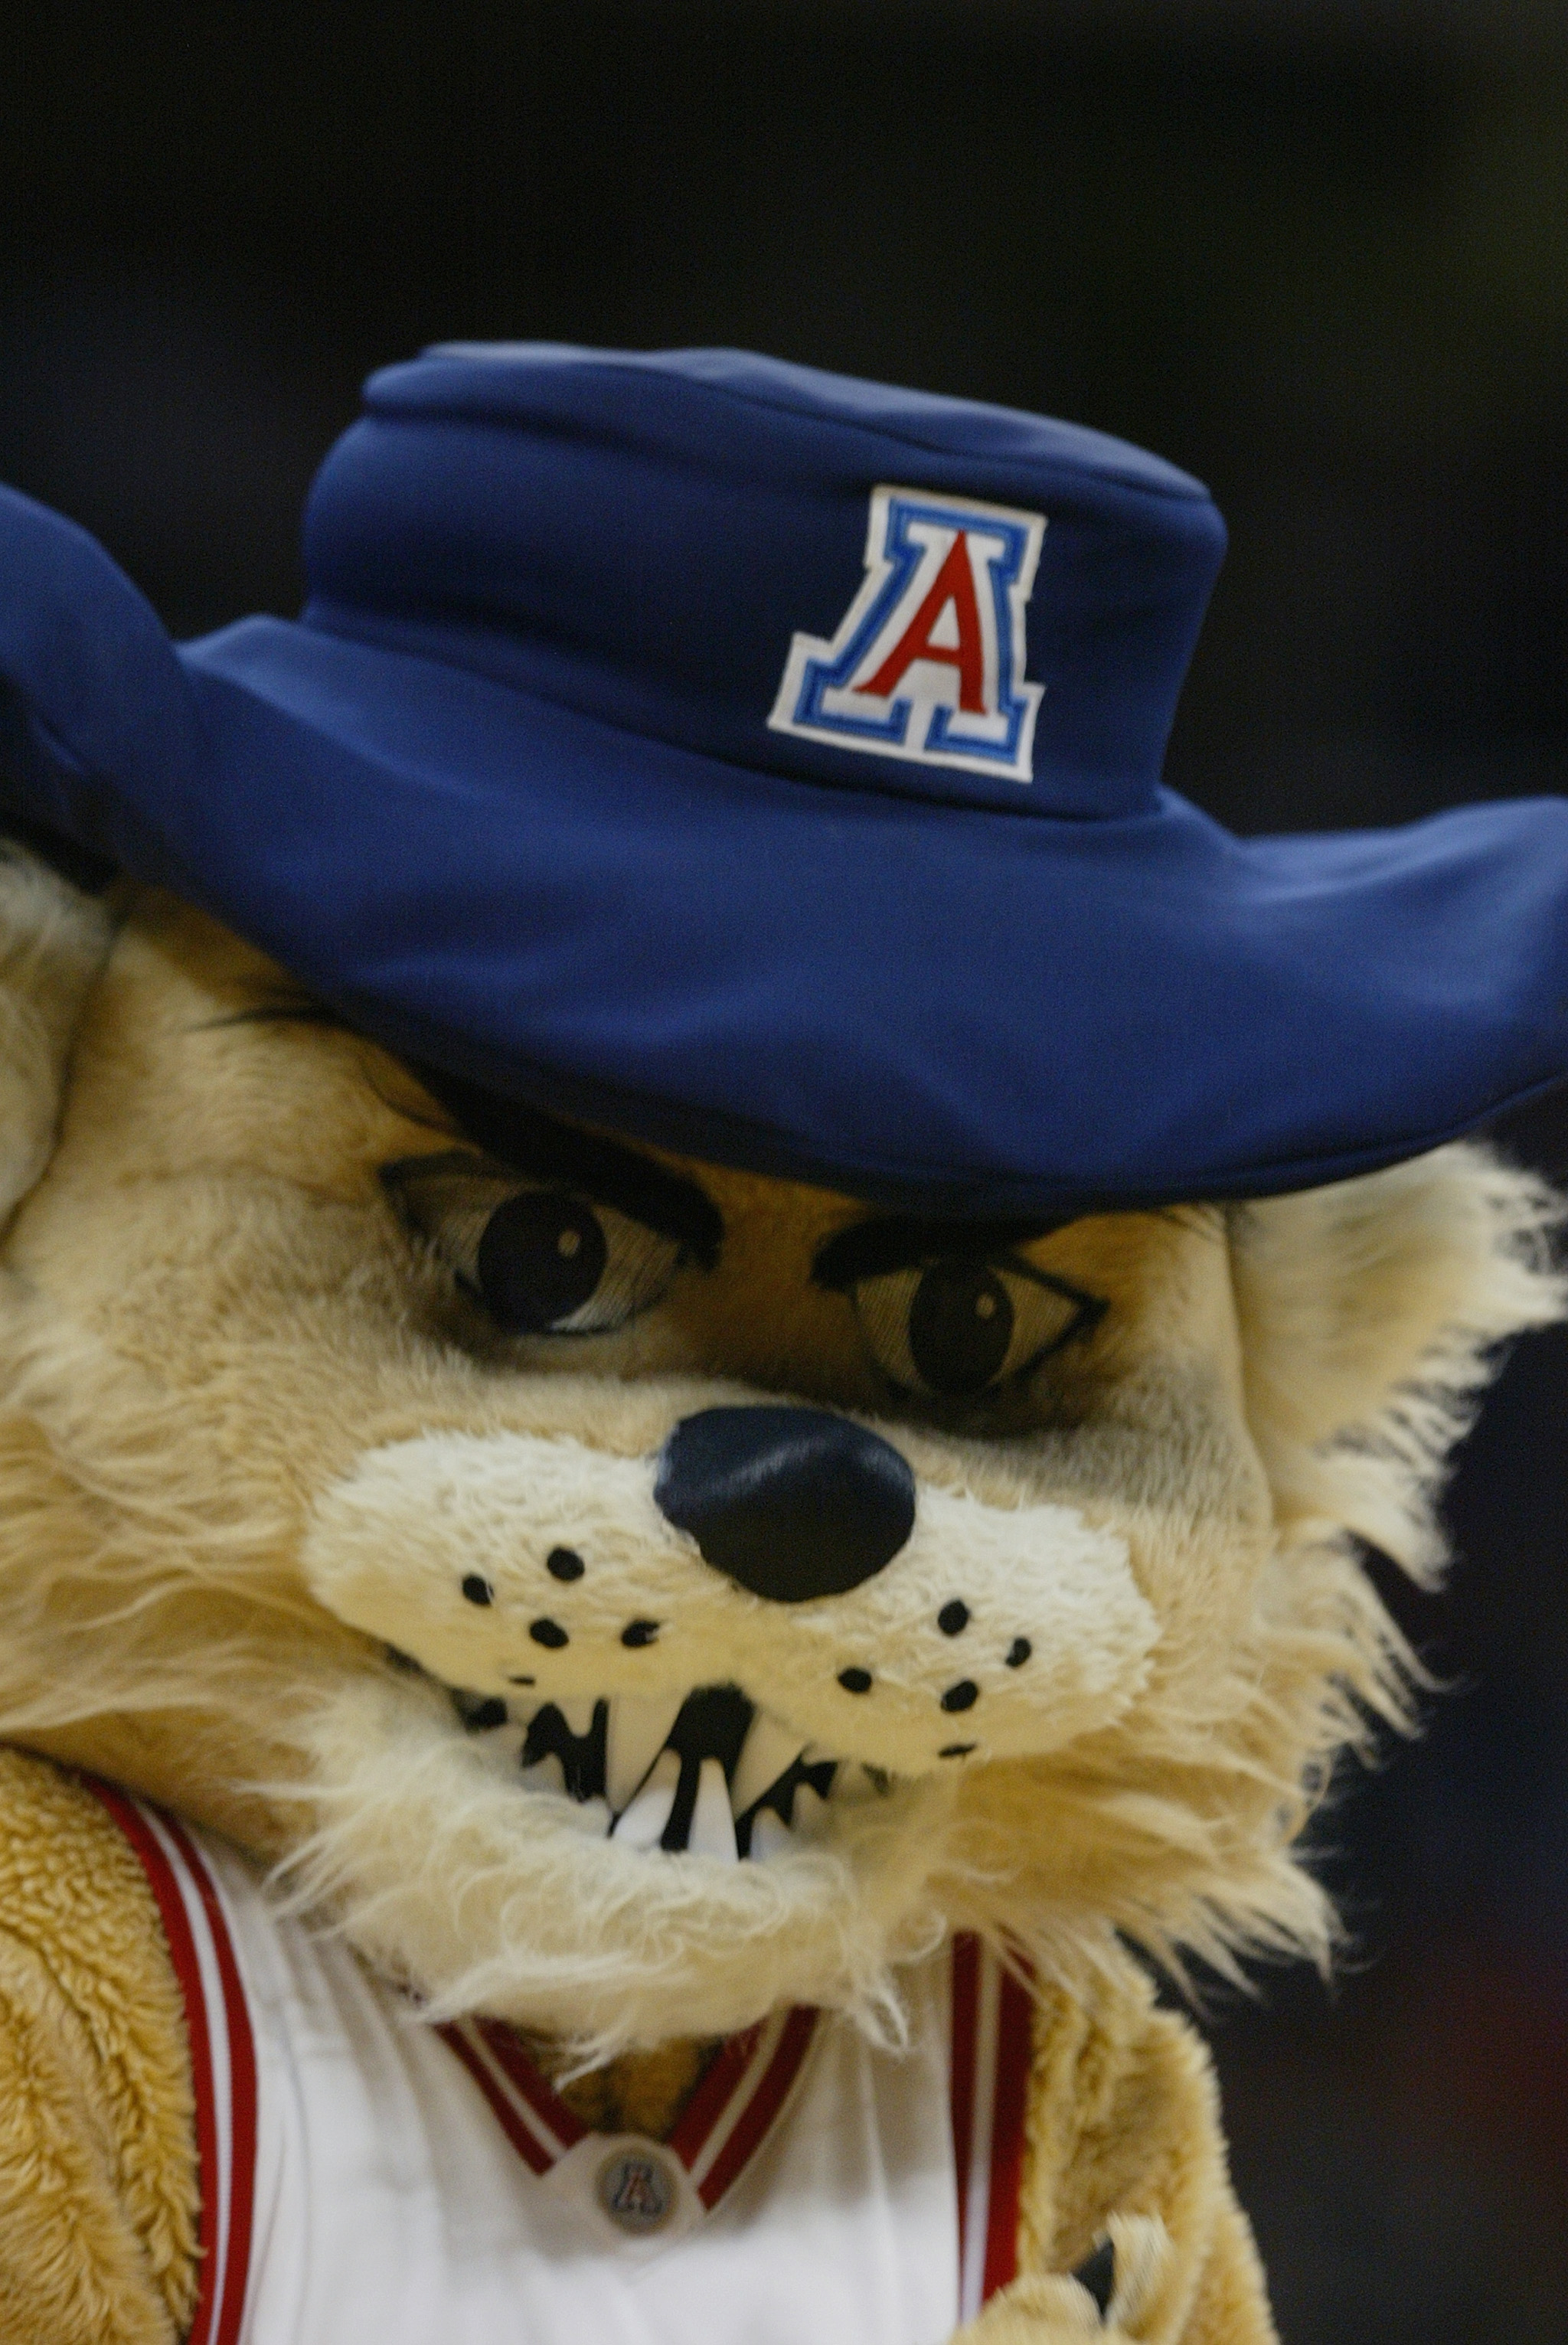 RALEIGH, NC - MARCH 18:  Wilbur the Wildcats, the mascot of the Arizona Wildcats, during the first round game of the NCAA Division I Men's Basketball Tournament against the Seton Hall Pirates at the RBC Center on March 18, 2004 in Raleigh, North Carolina.